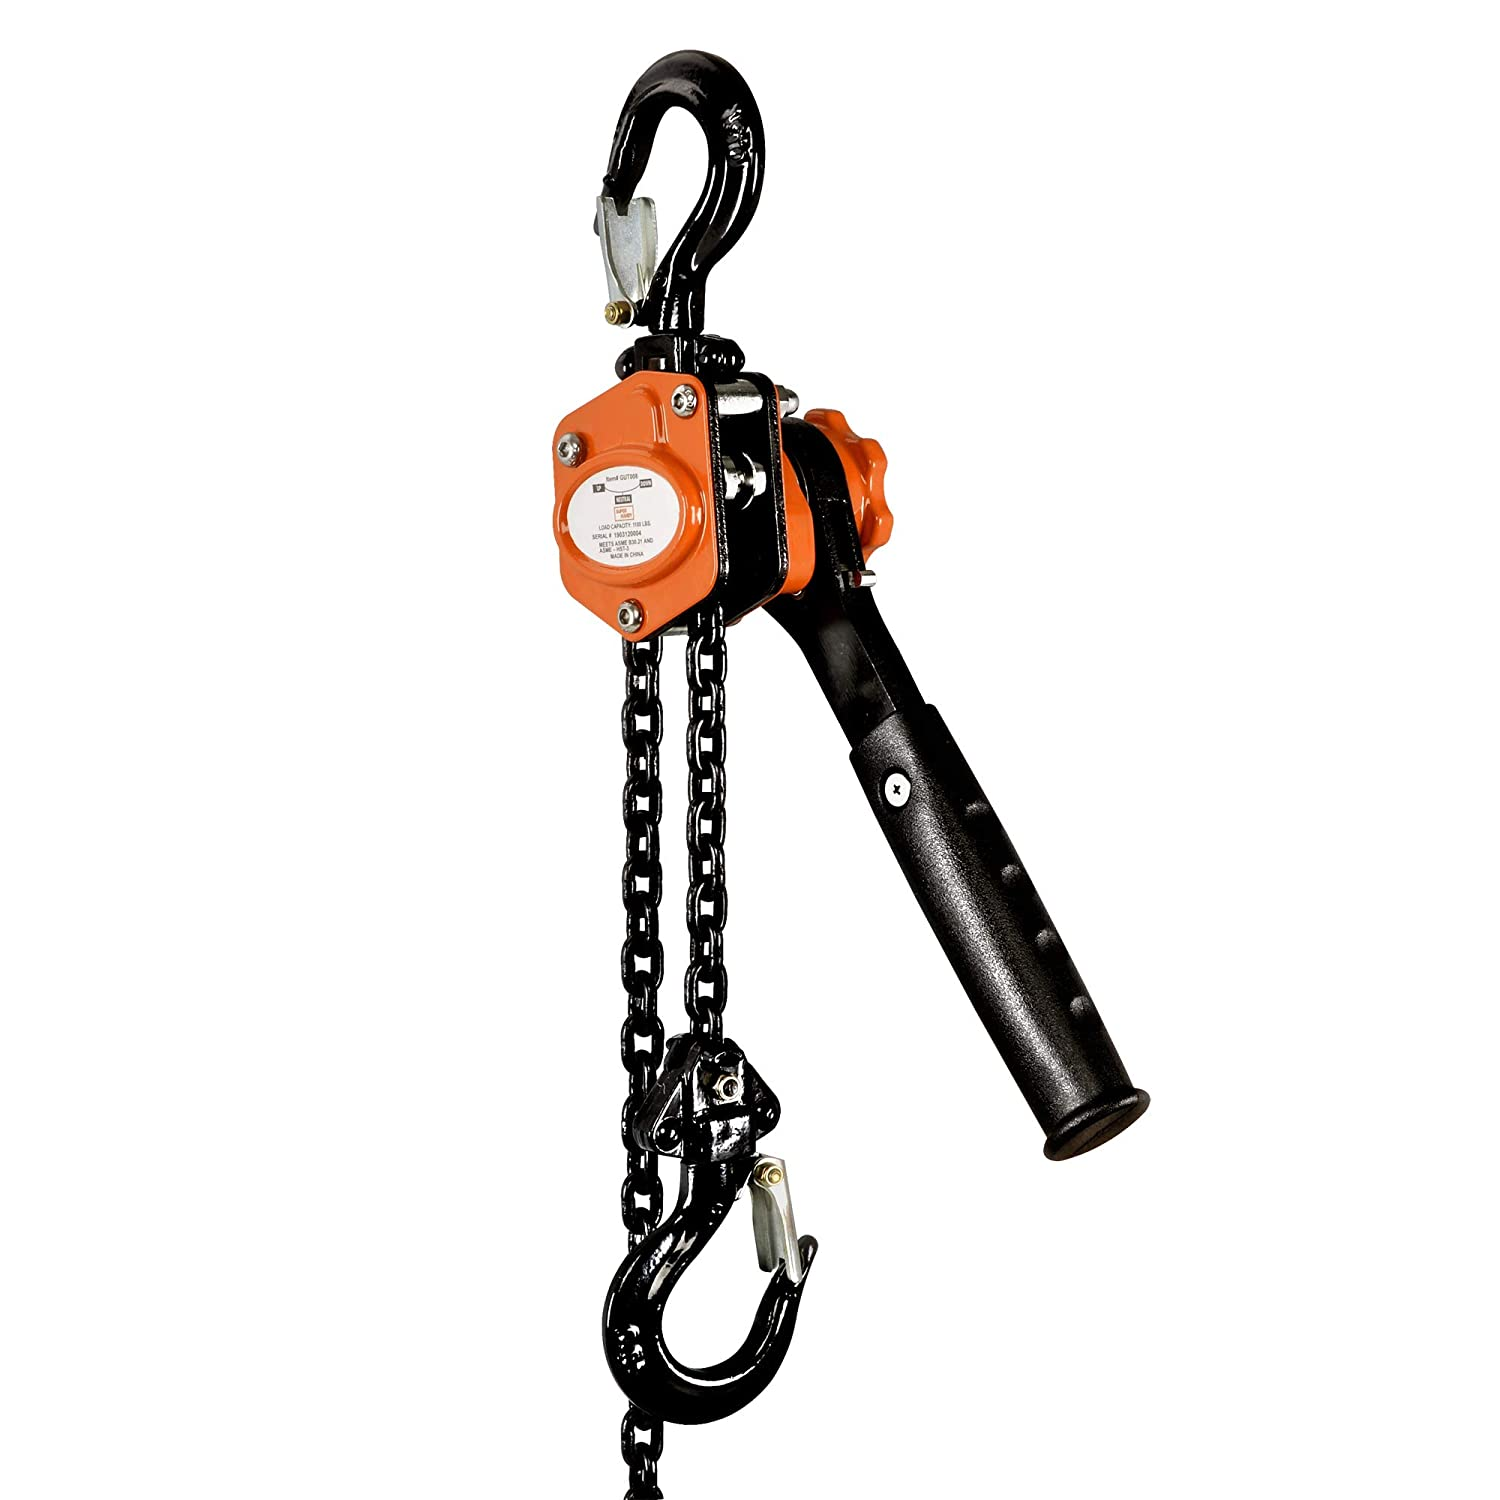 SuperHandy Lifting Puller 1/2 Ton Capacity with chain - photo